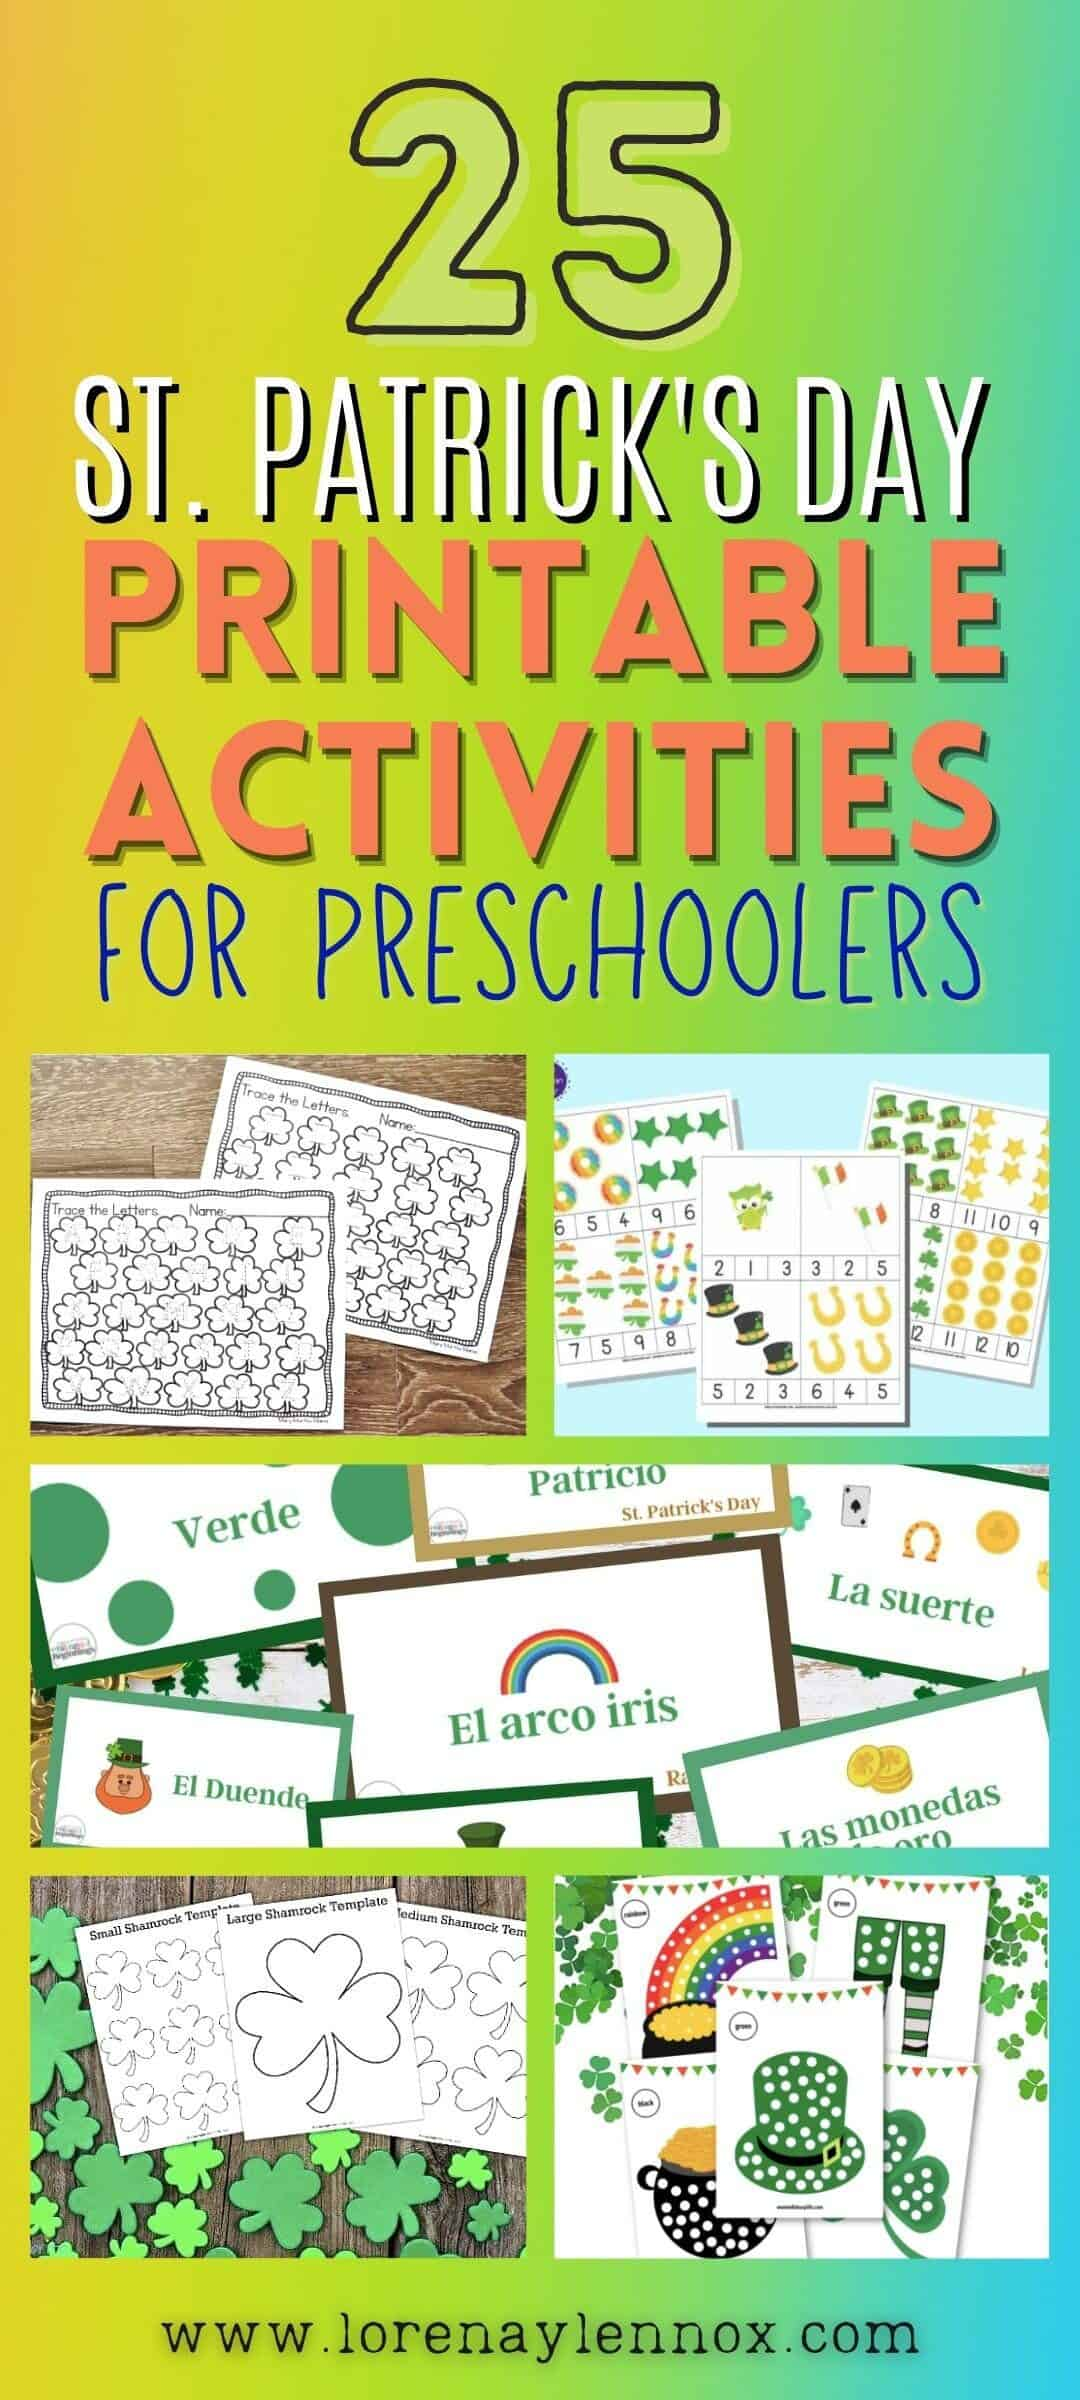 25 St. Patrick's Day Printables for Preschoolers